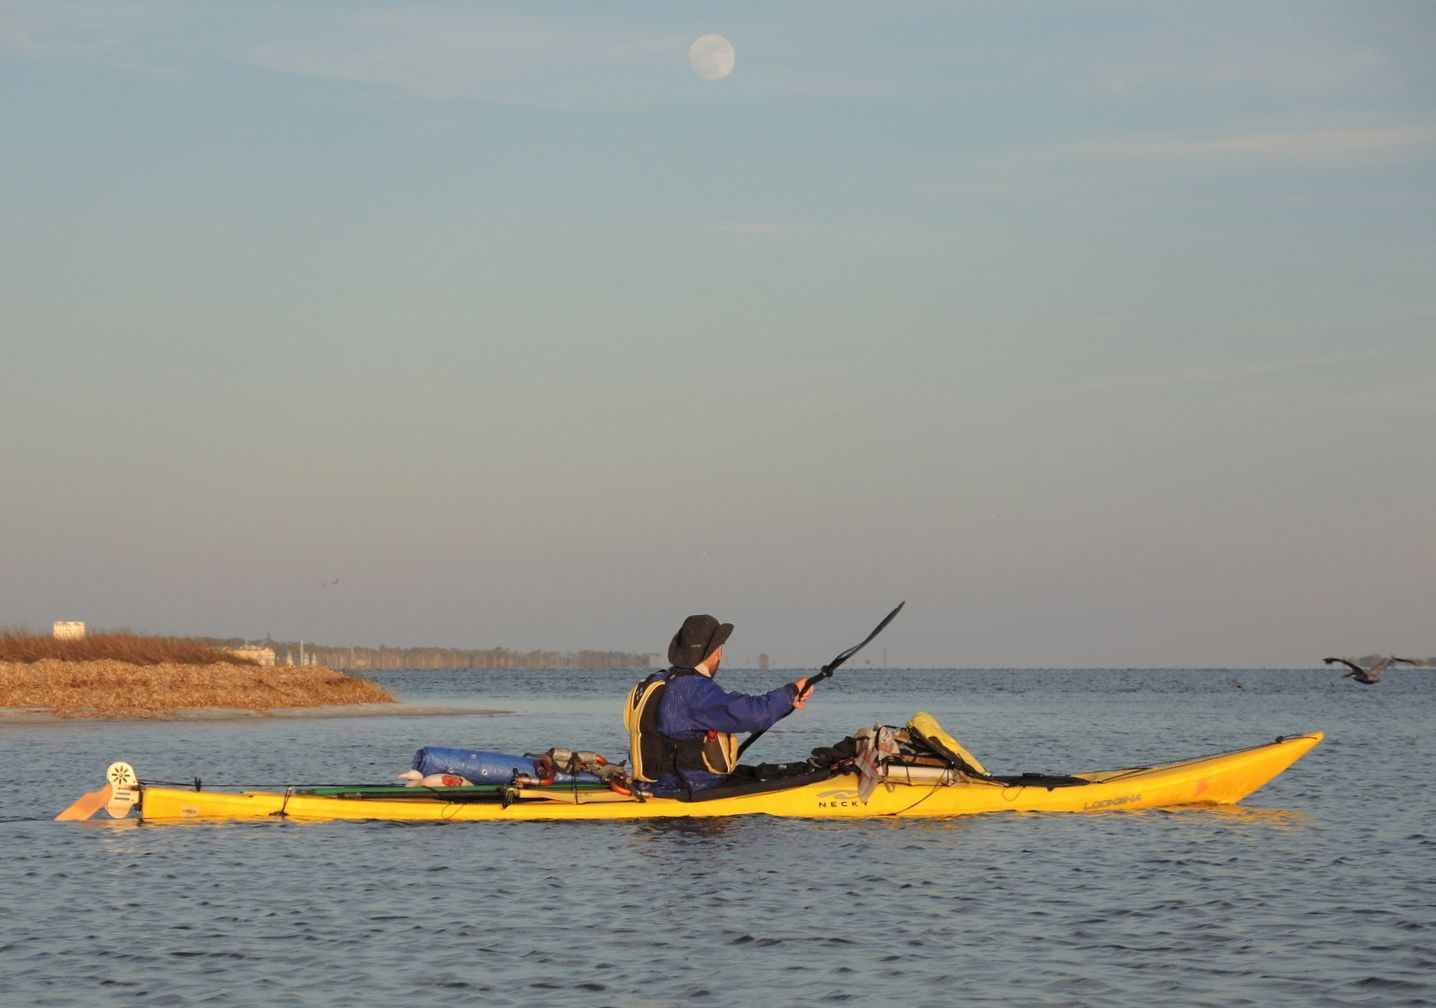 Kayak and Canoe Kayaker completes 4,000-mile, nine-month journey.  Daniel Alvarez paddles 20 miles per day from Minnesota to the Florida Keys.  Article by David Strege